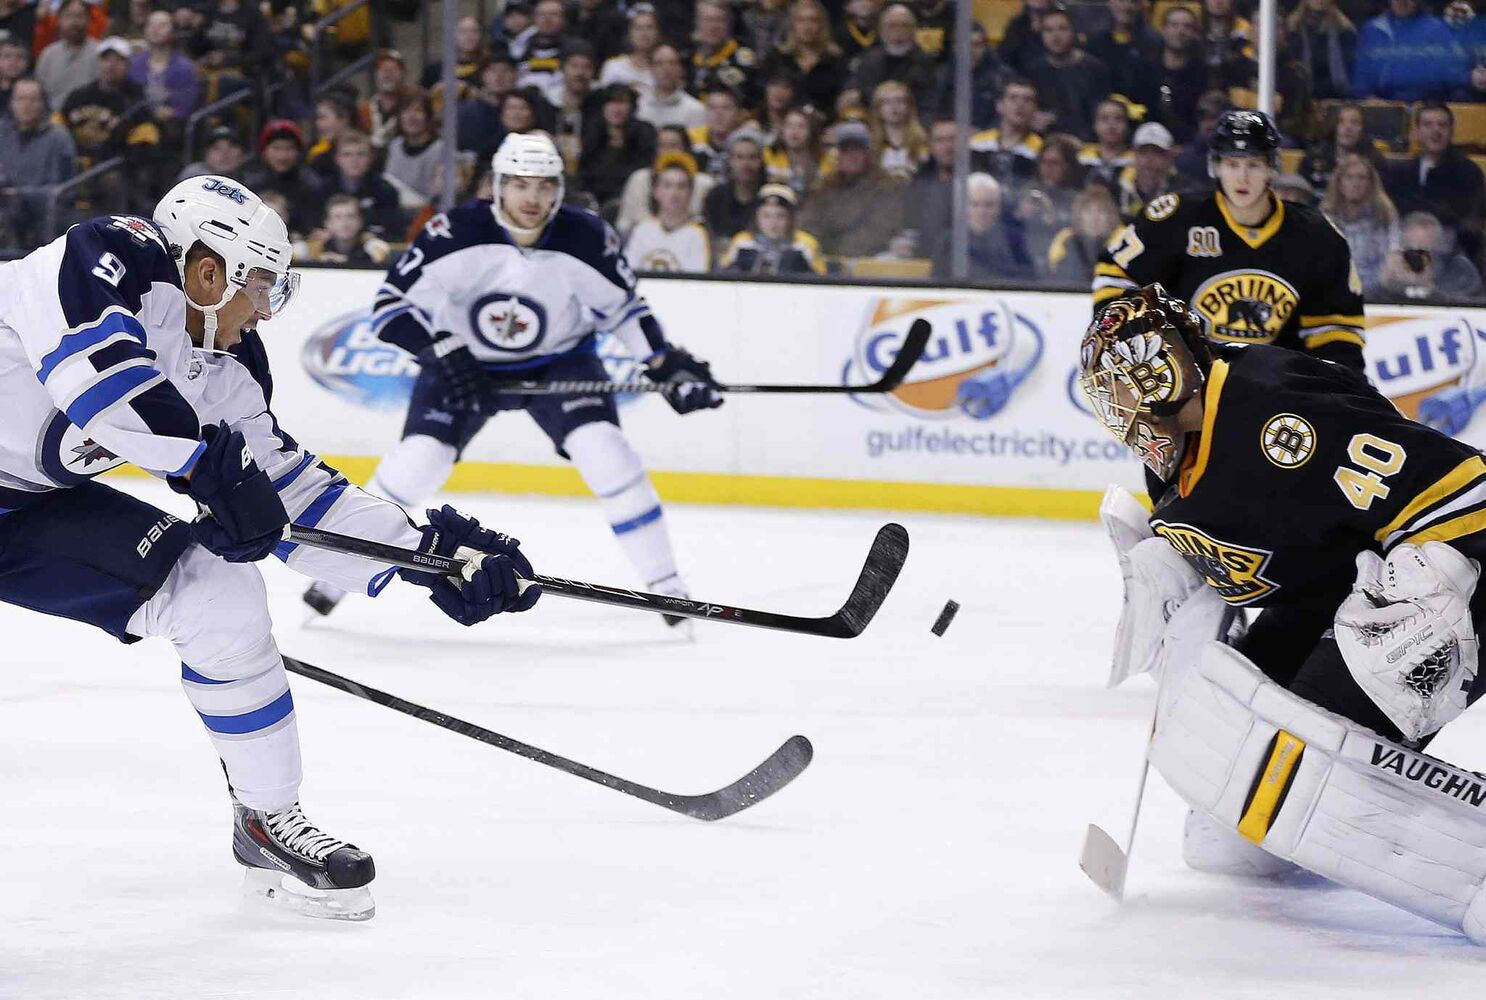 Winnipeg Jets' Evander Kane (9) takes a shot on Boston Bruins' Tuukka Rask (40) in the first period Saturday. (Michael Dwyer / The Associated Press)